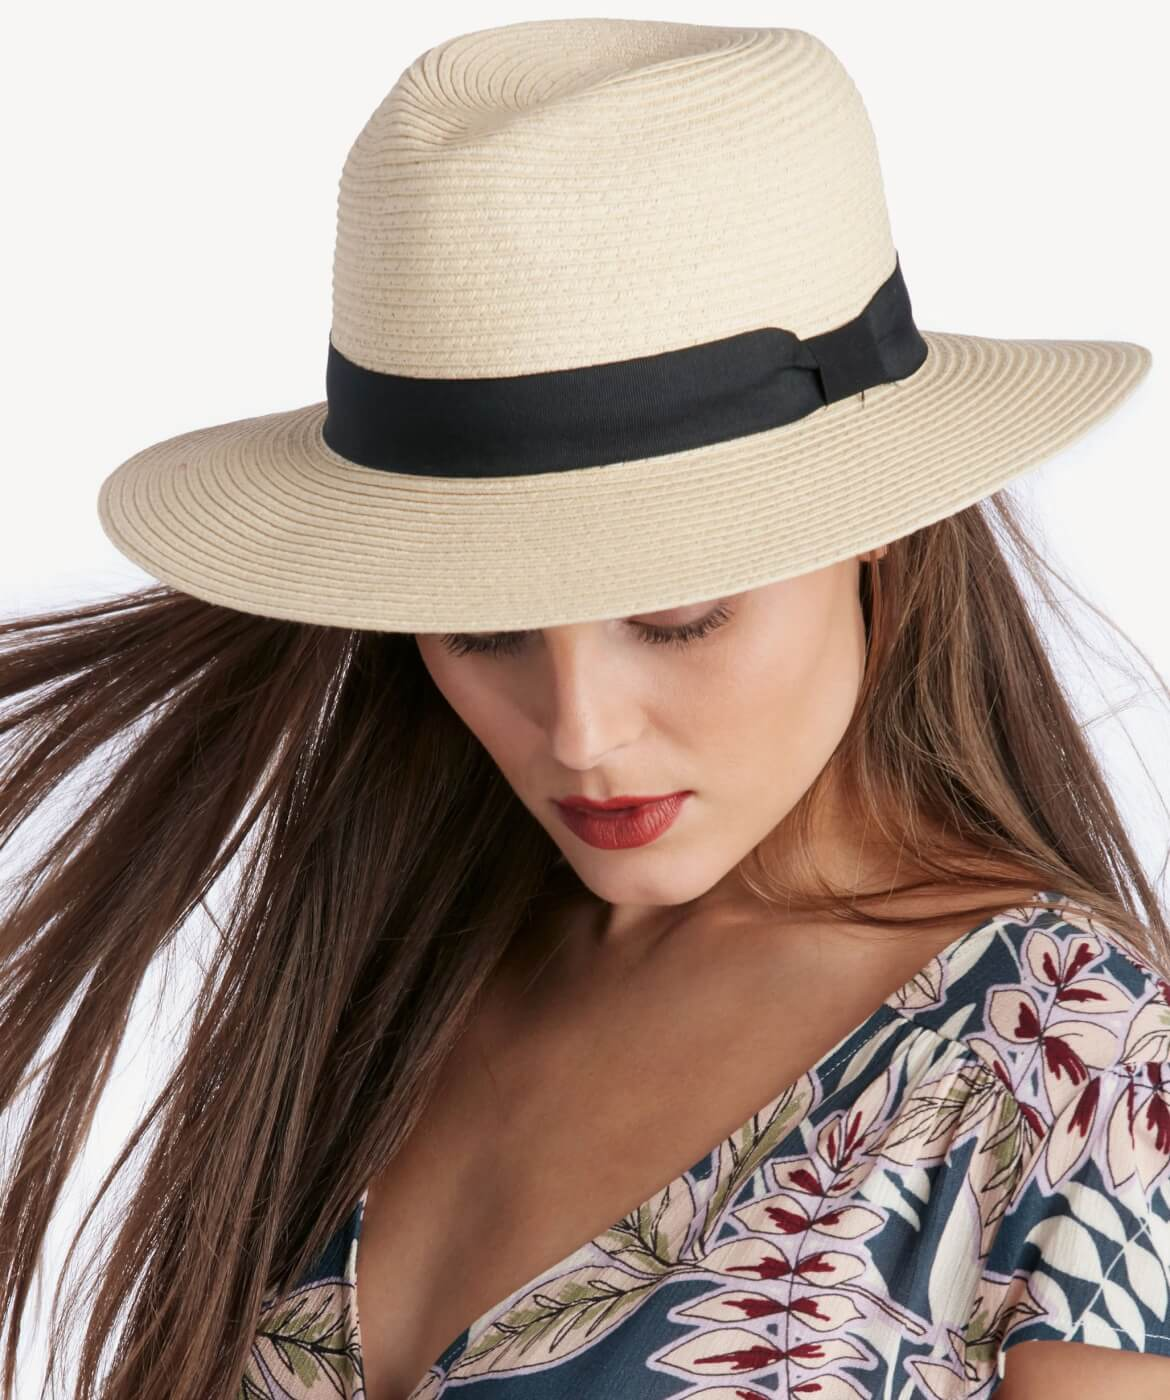 Top Off Your Look With One of These Chic Vegan Hats  4a970117e1c